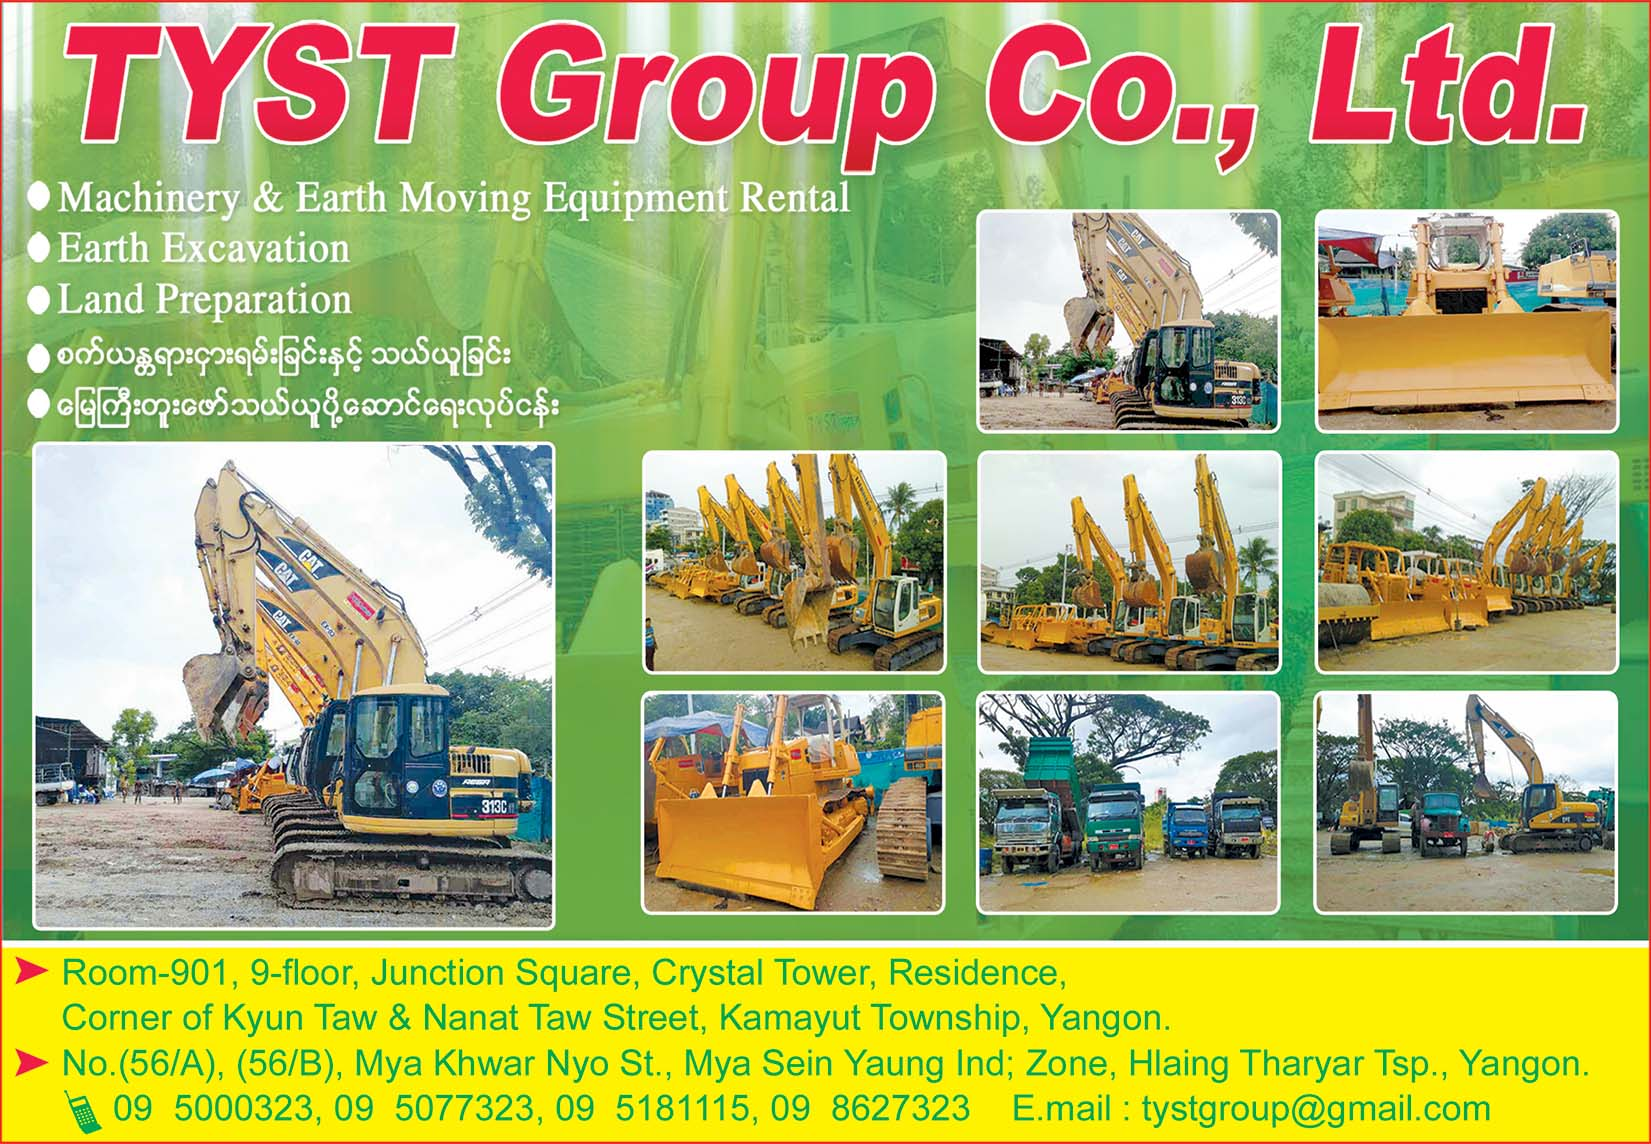 TYST Group Co., Ltd.